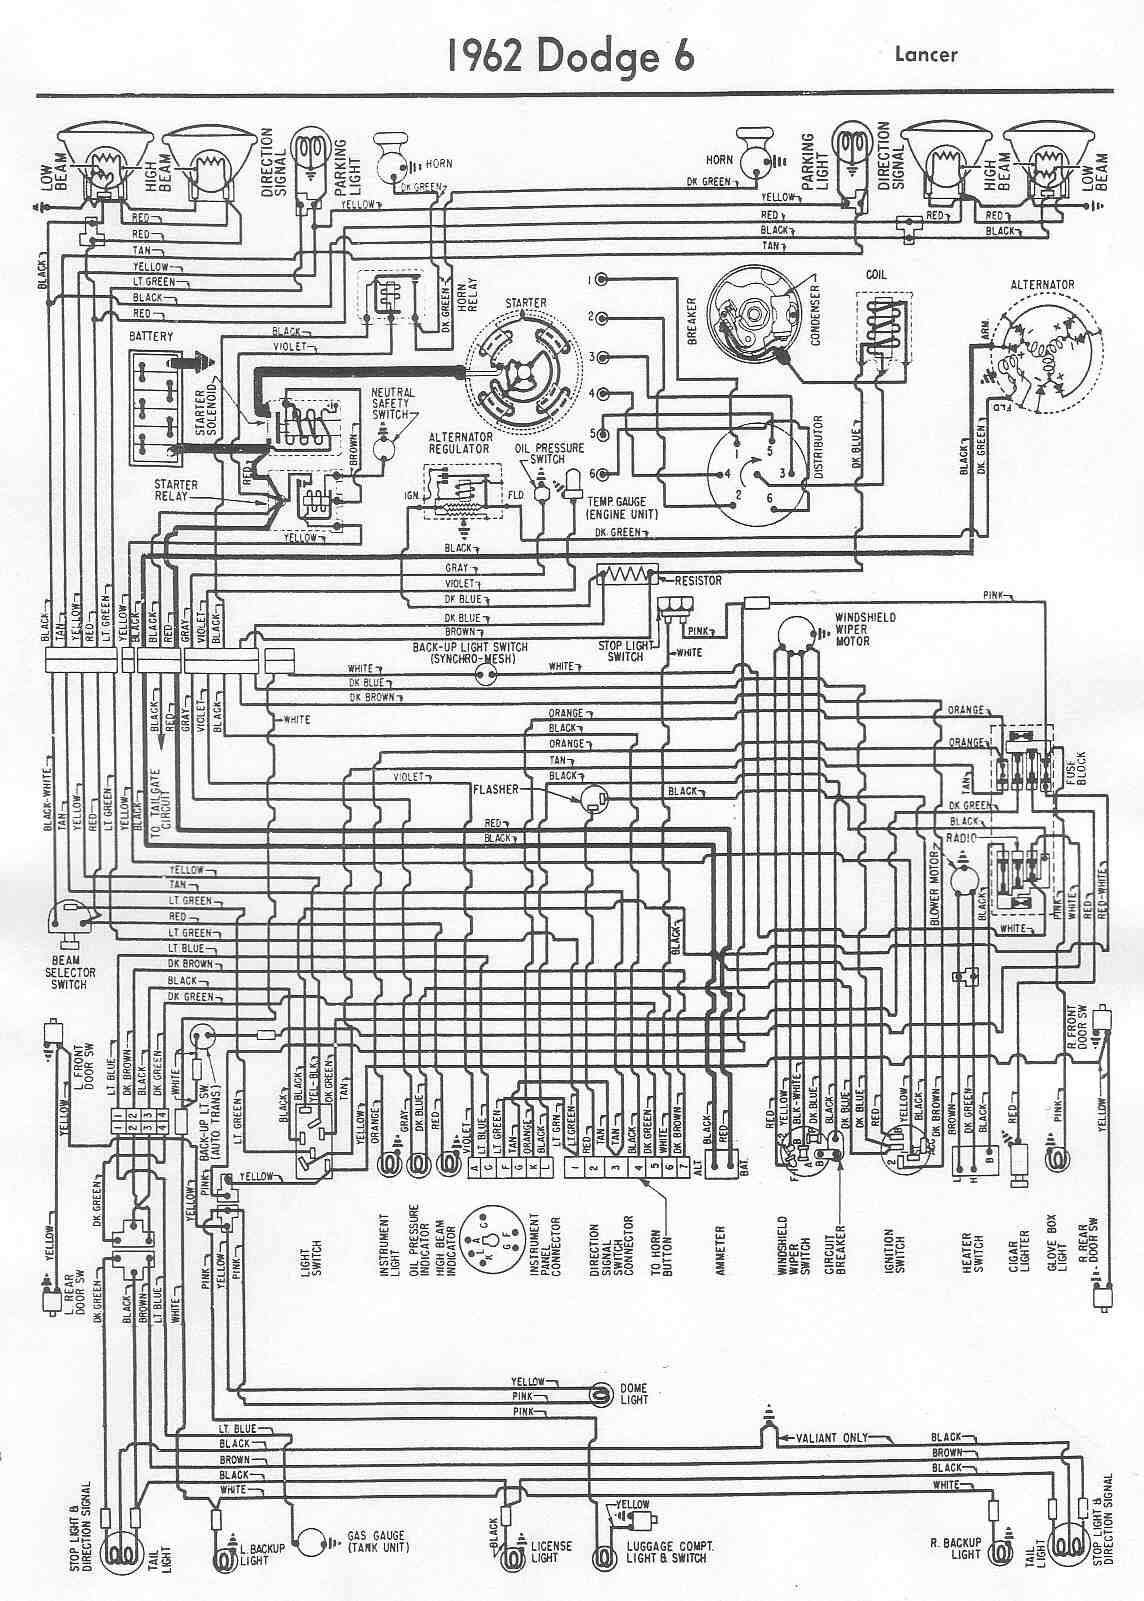 Dodge Car Manuals Wiring Diagrams Pdf Fault Codes Porsche 1973 1914 Fuse Box Diagram Download